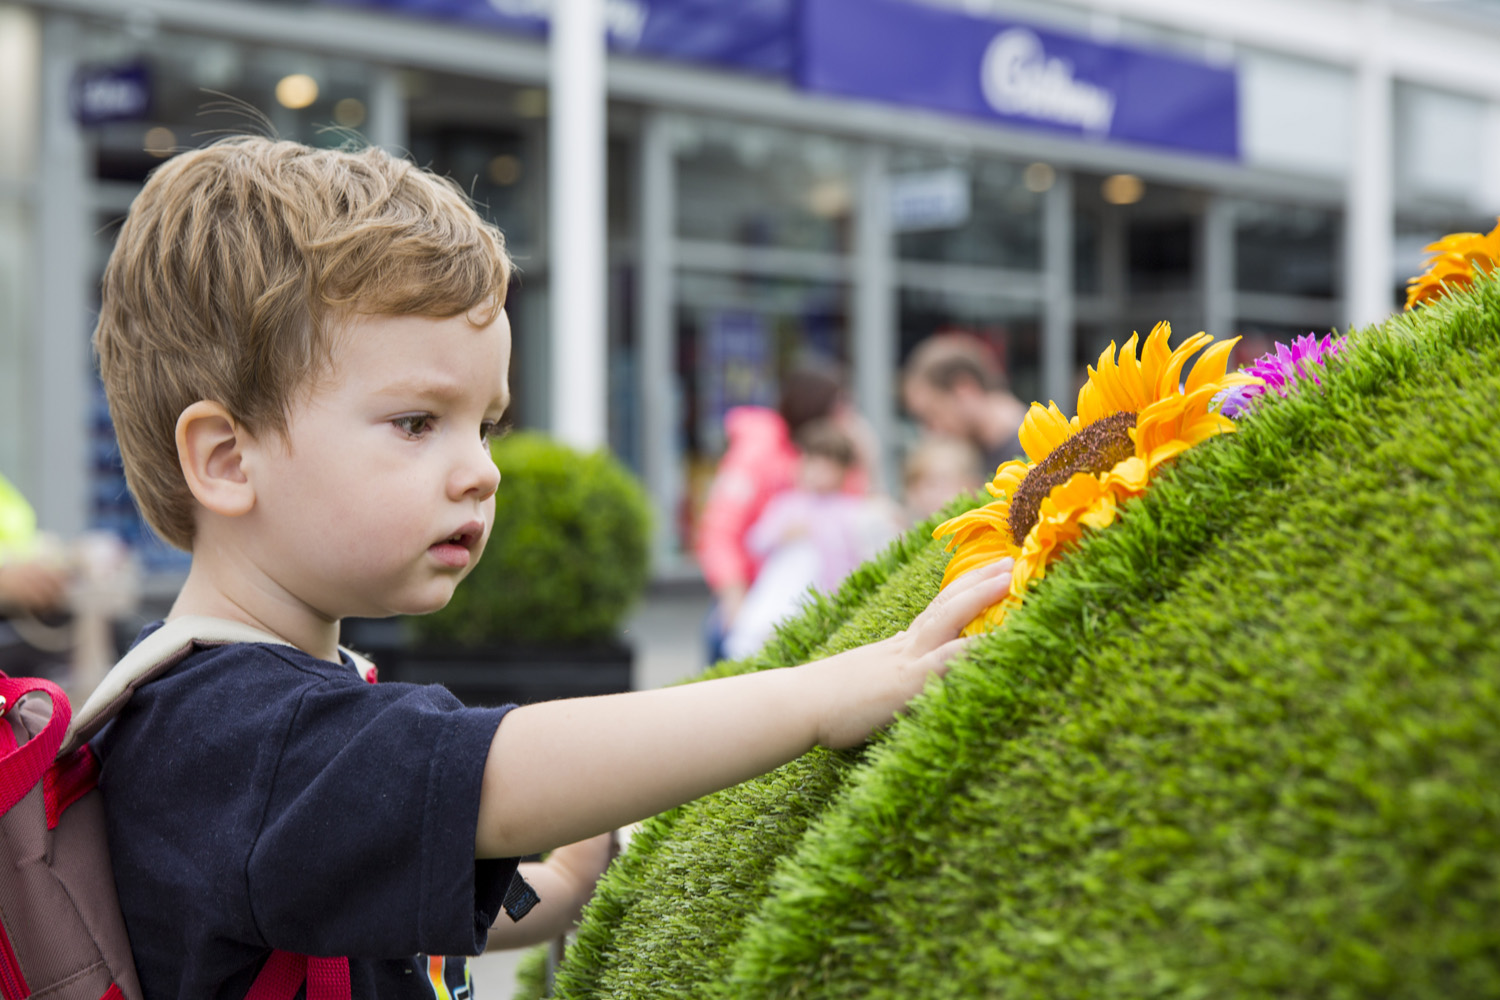 McArthurGlen Designer Outlet Bridgend launches Festival of Summer - young boy with Topiary Bug.JPG